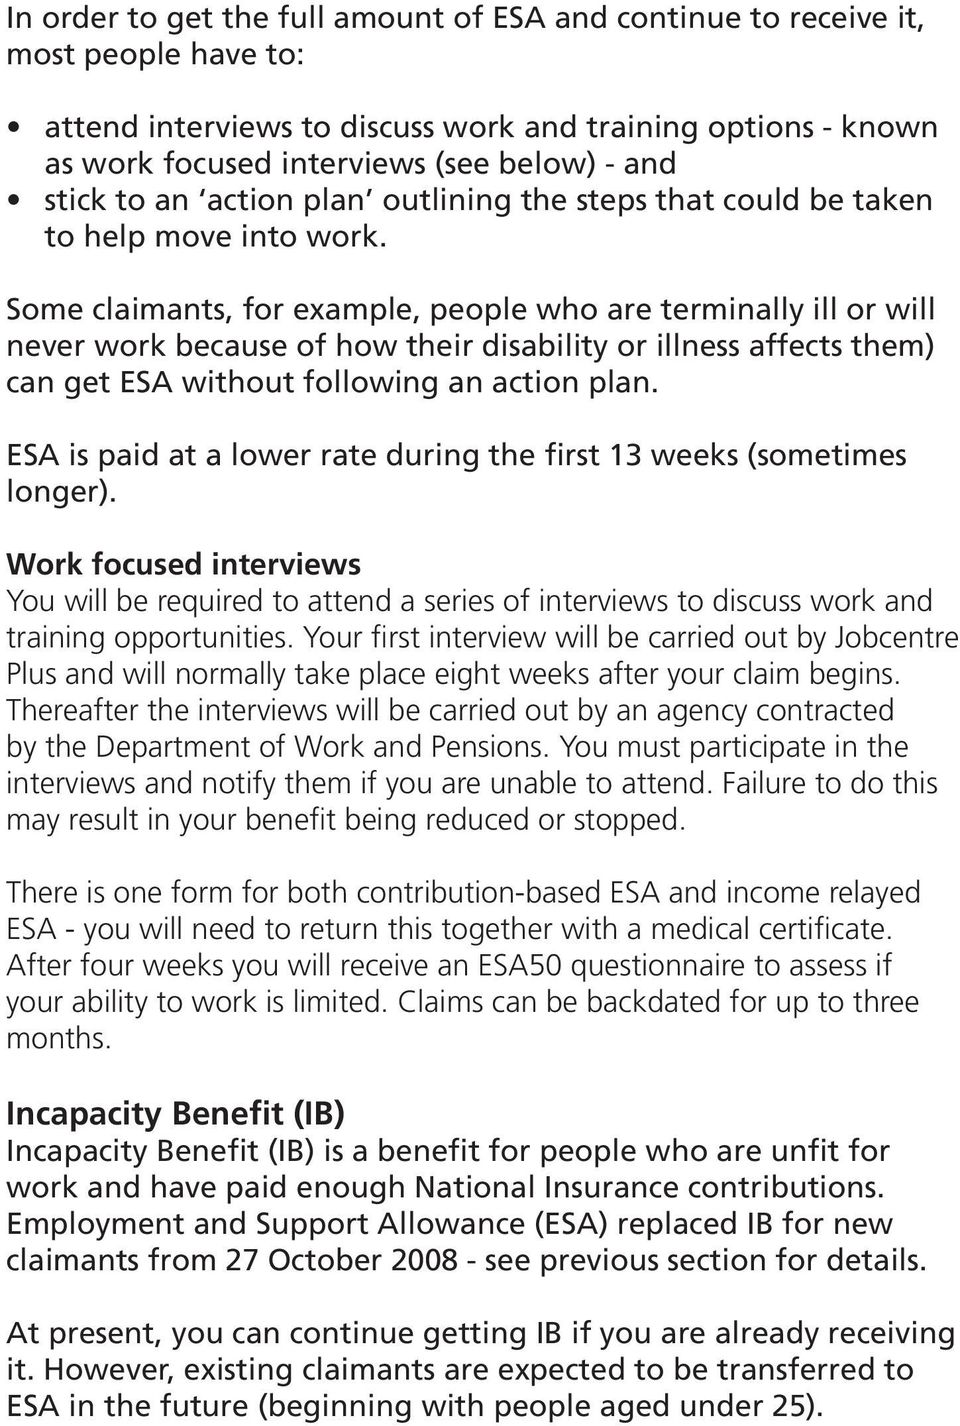 Some claimants, for example, people who are terminally ill or will never work because of how their disability or illness affects them) can get ESA without following an action plan.